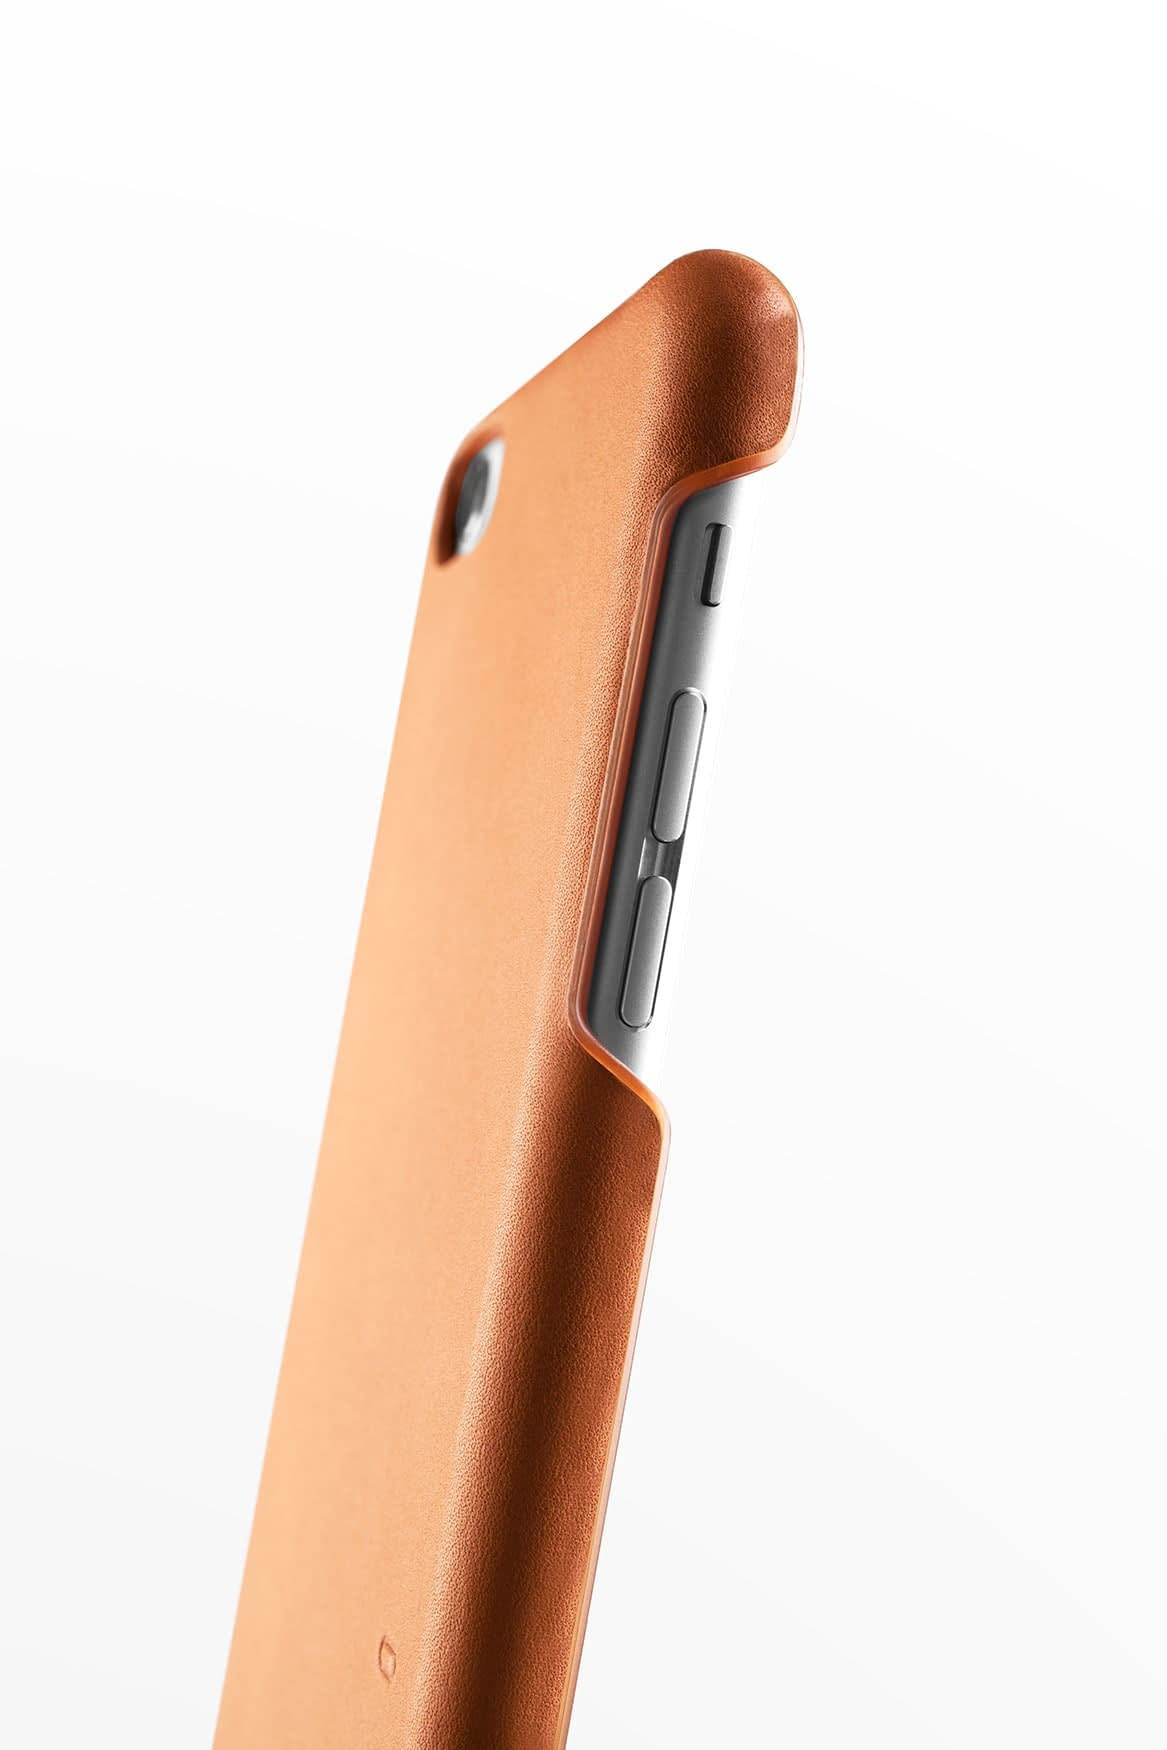 Leather Case for iPhone 6s Plus Tan 006